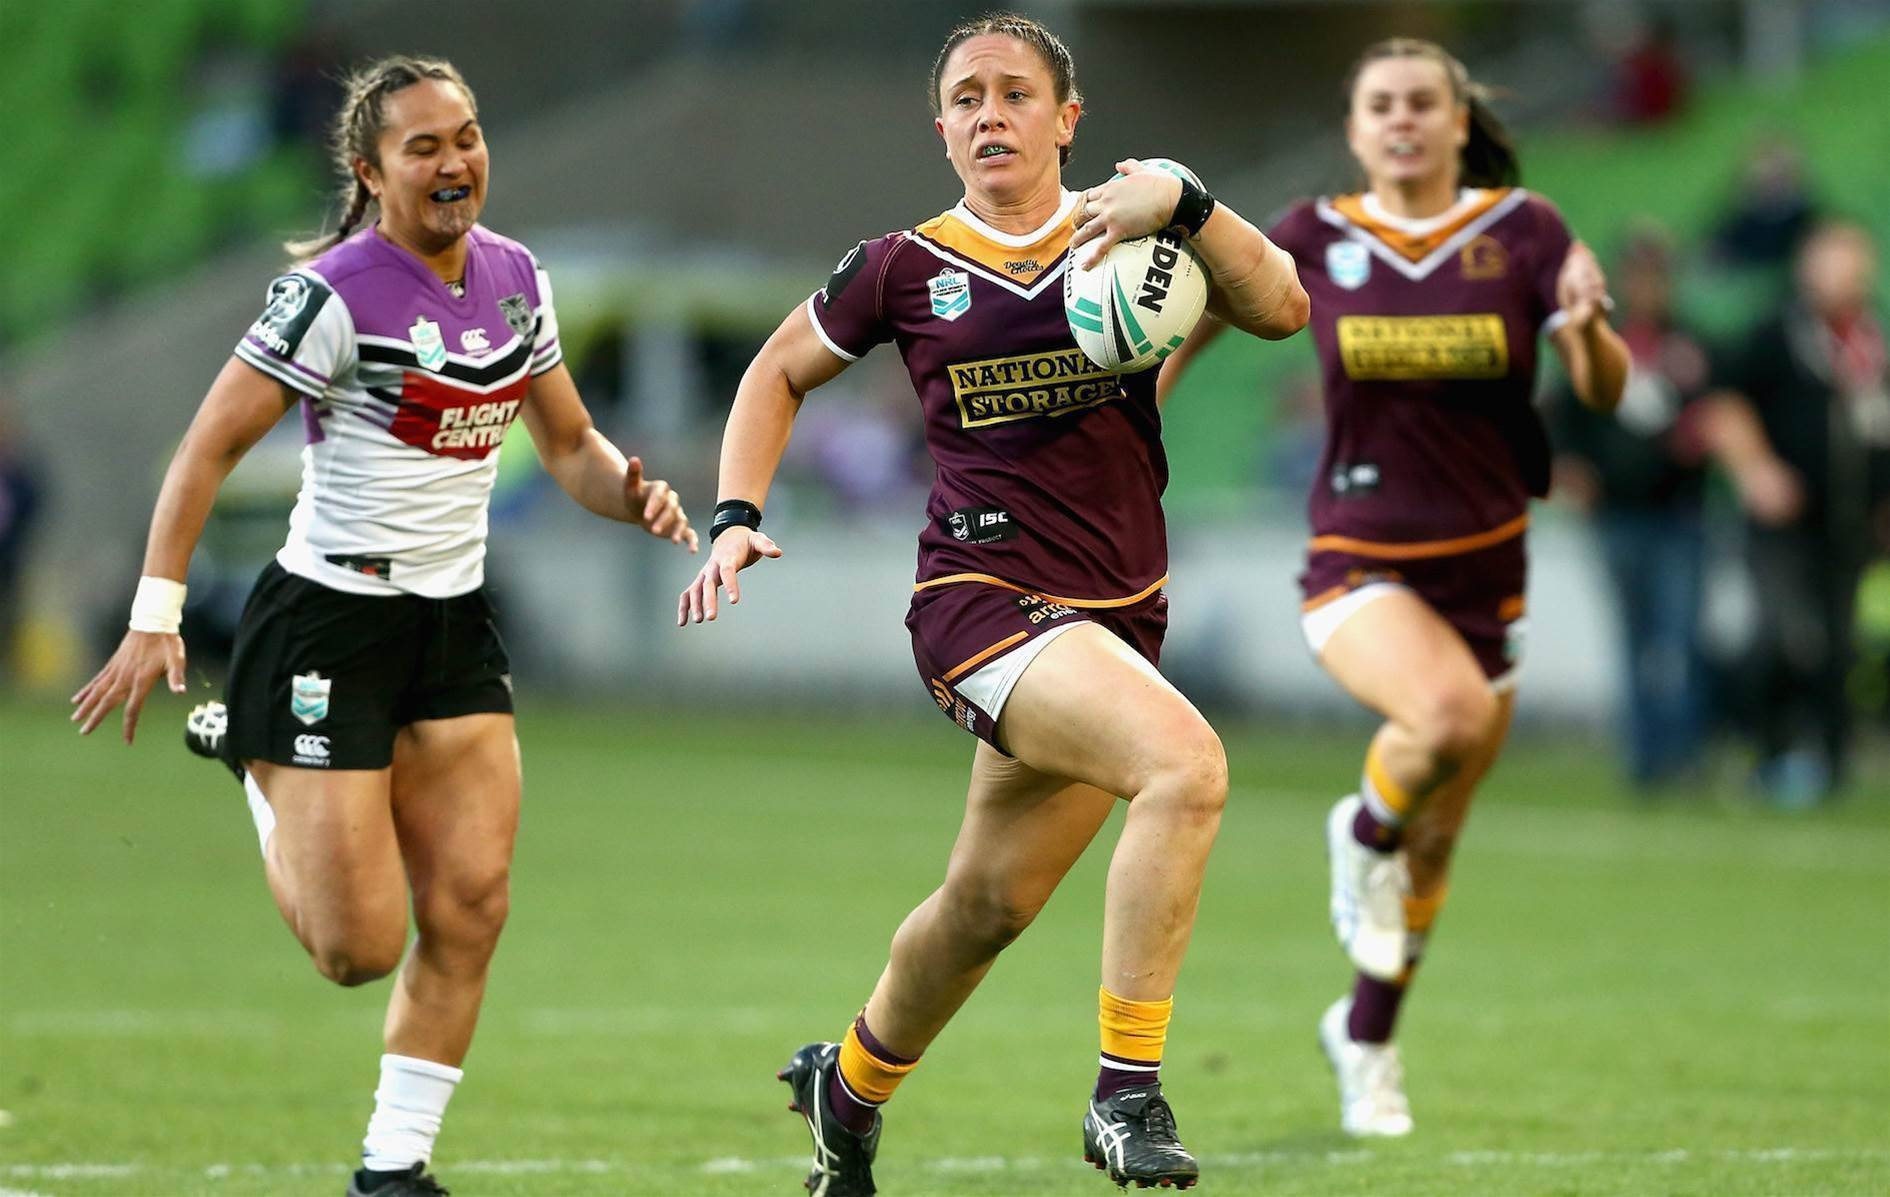 Breayley: Bring on the challenge